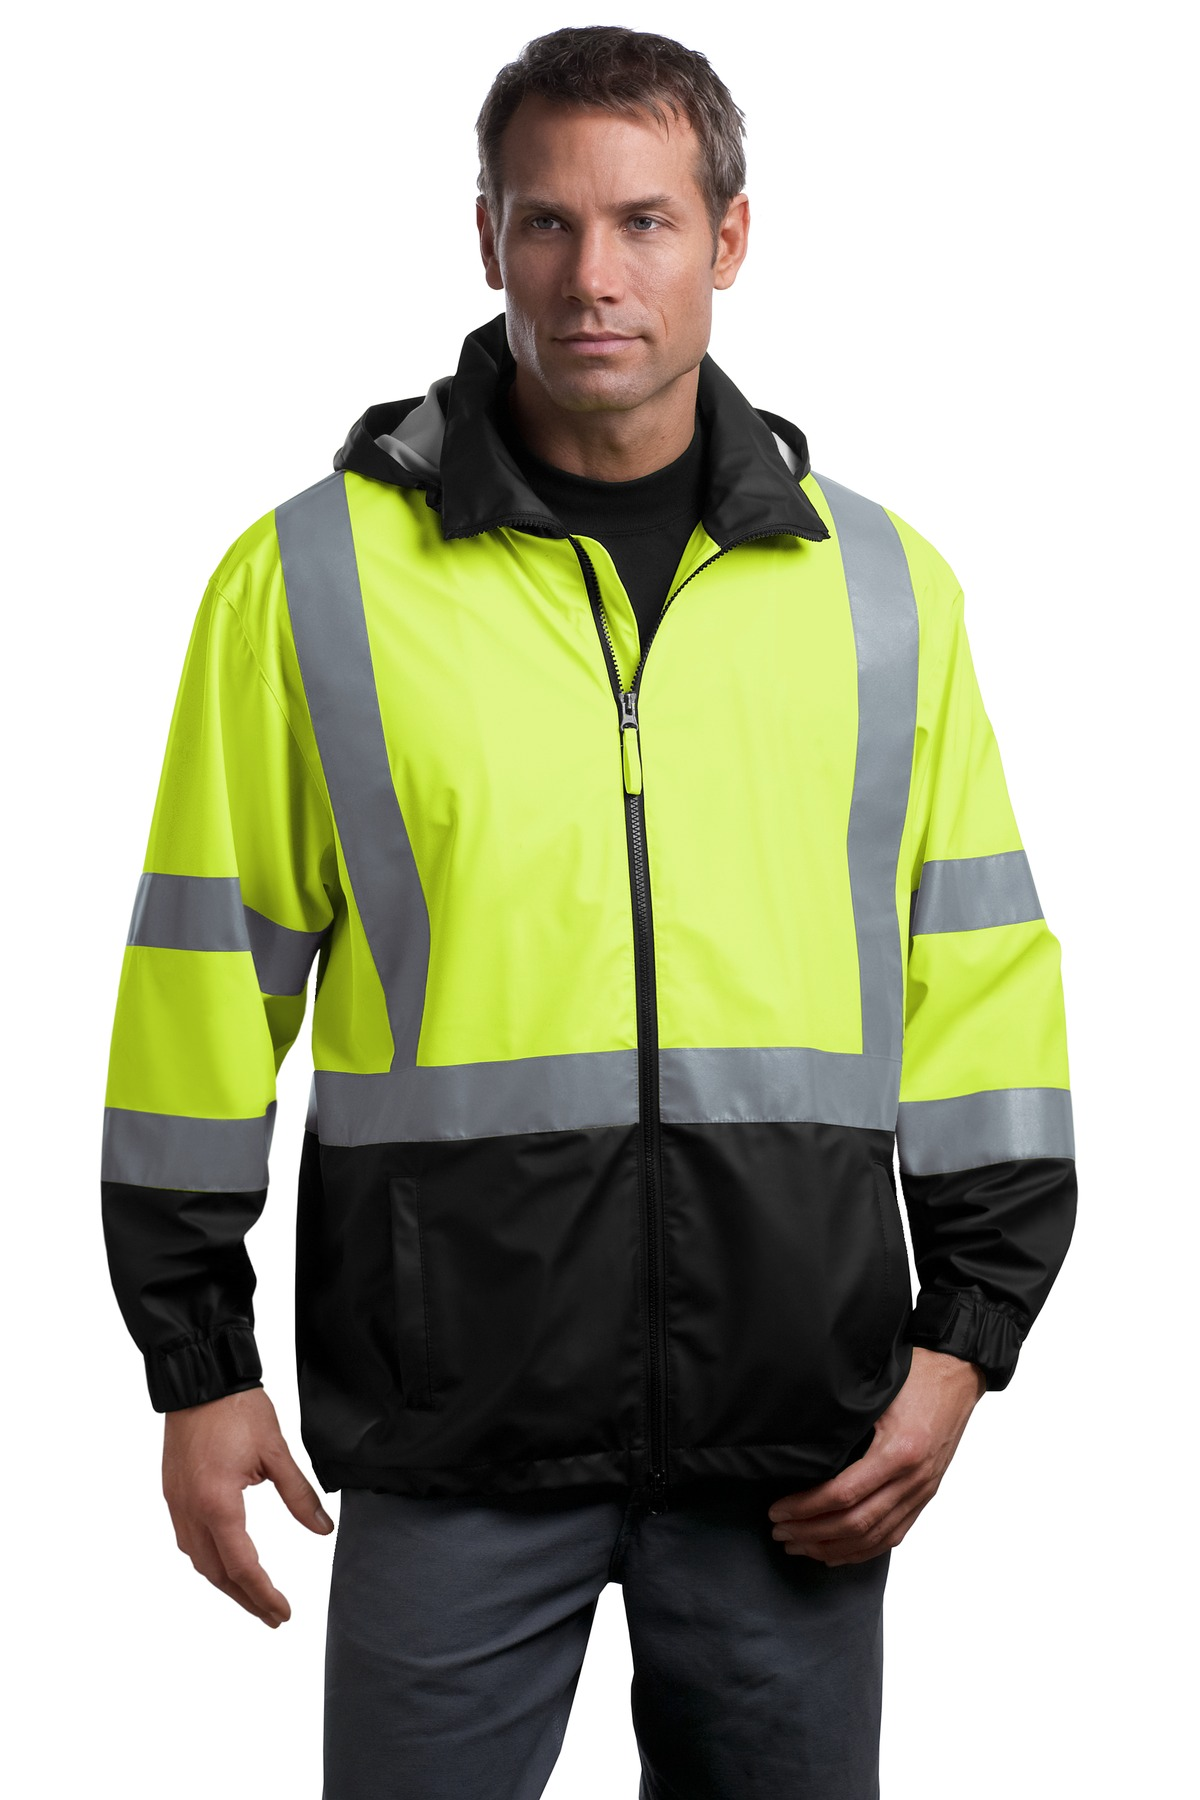 CornerStone® - ANSI 107 Class 3 Safety Windbreaker.